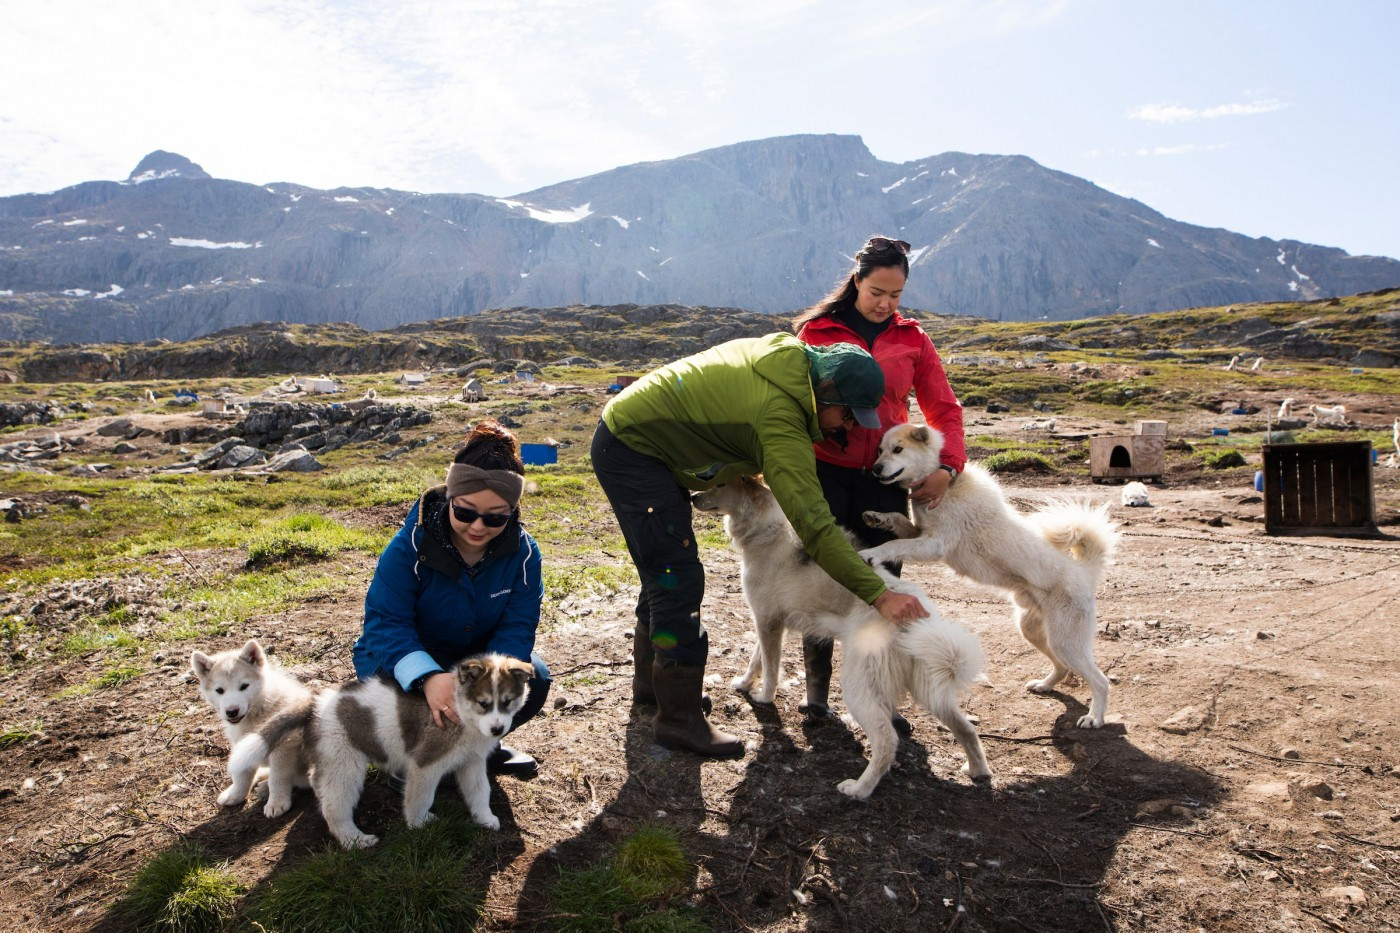 Dogsledge Taxi Puppies & Tourists. Photo - Aningaaq R. Carlsen, Visit Greenland